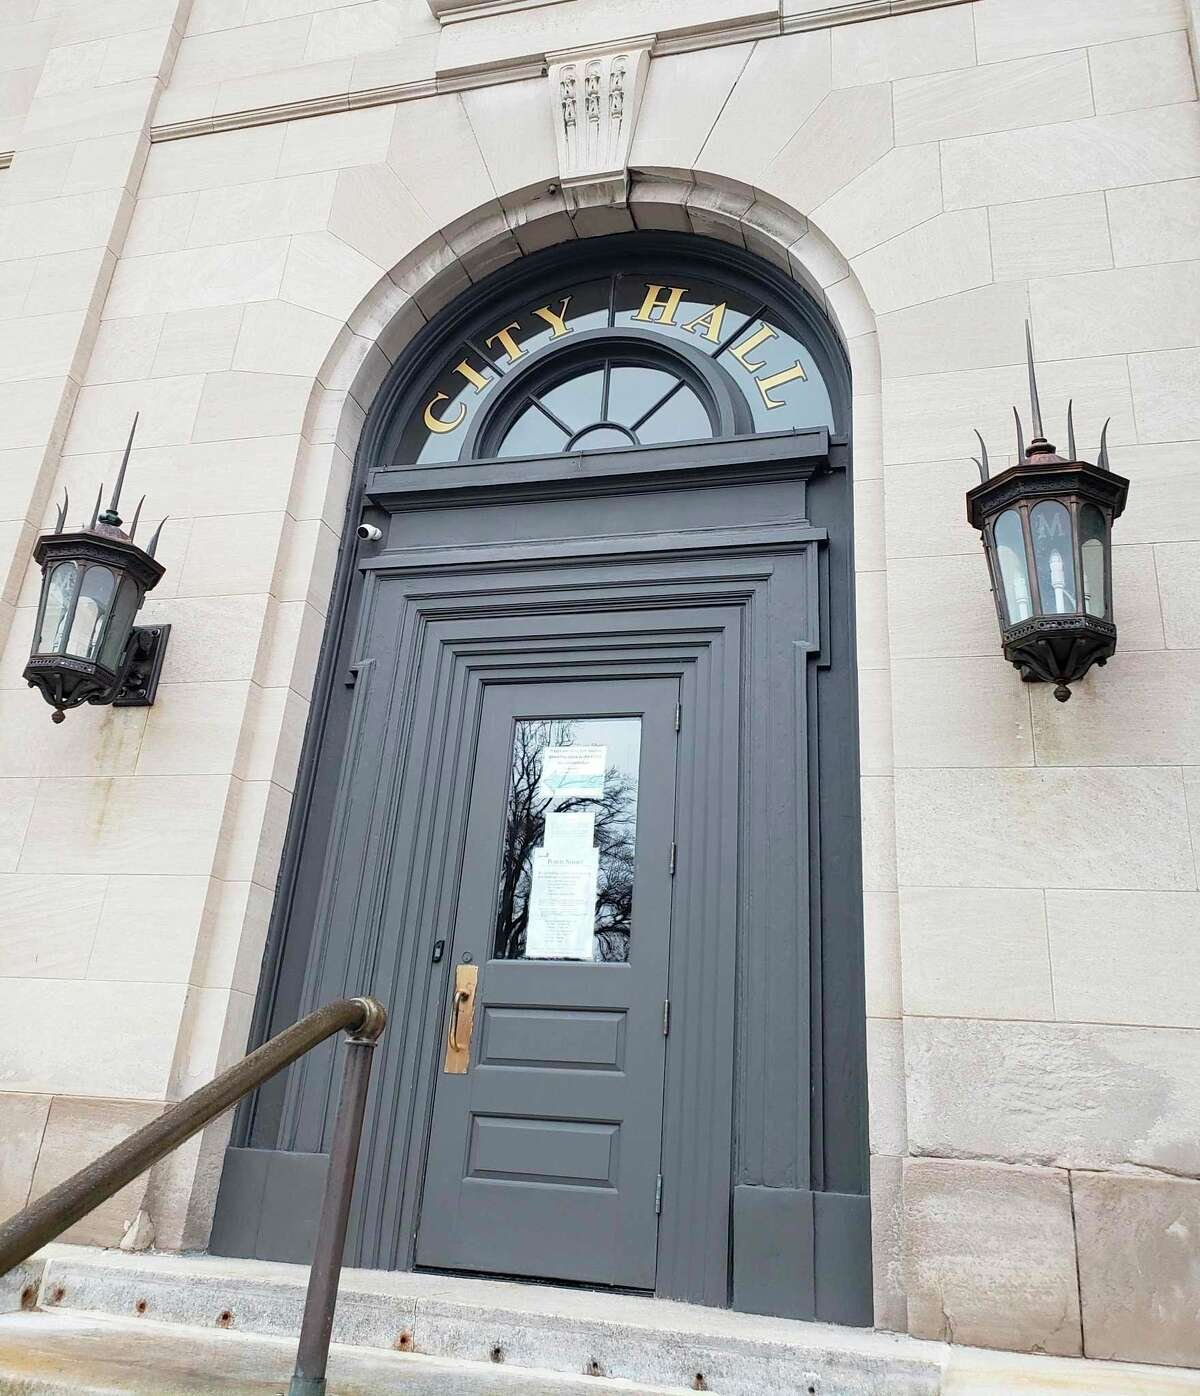 Manistee City Council voted unanimously to approve a $17,000 contract with the Michigan Municipal League to identifythe next city manager at its virtual special meeting on Tuesday. (File photo)